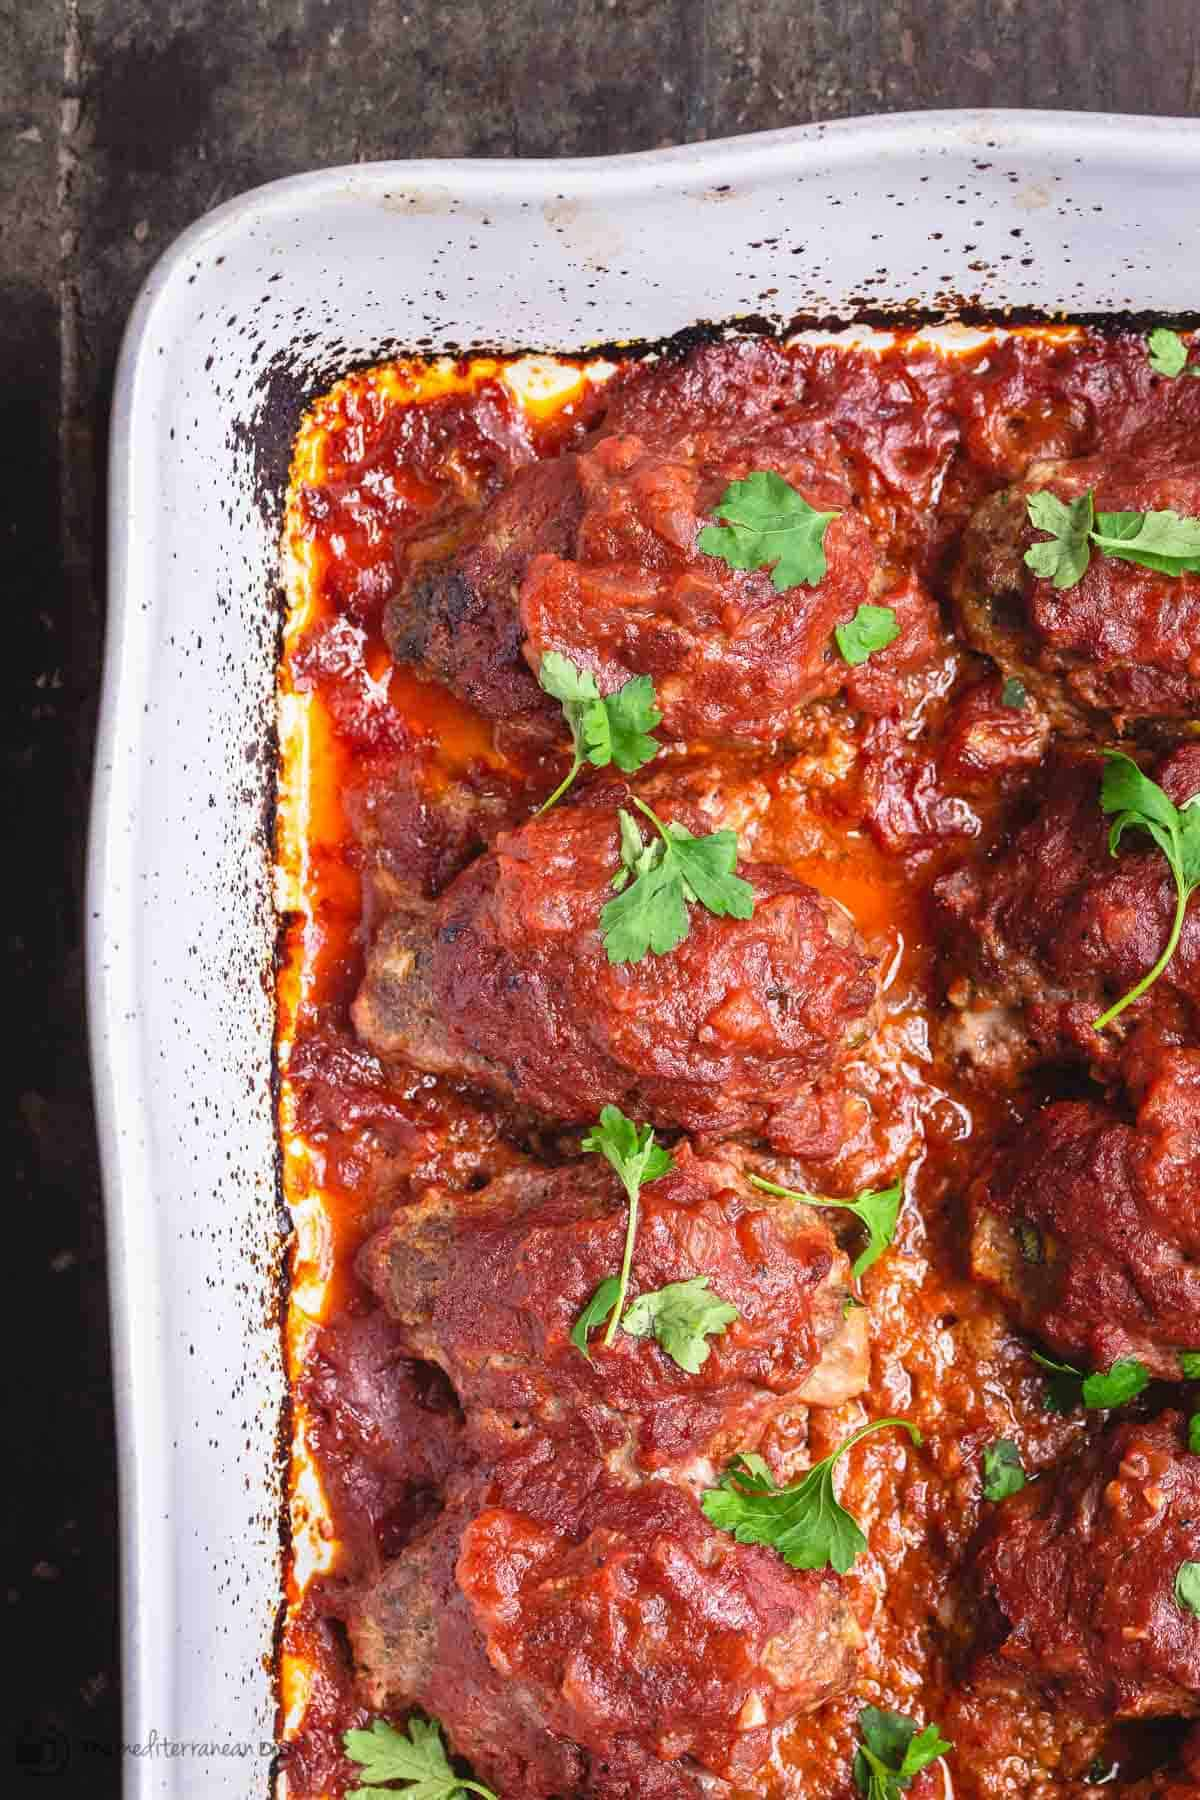 Greek Baked Meatballs in Red Sauce